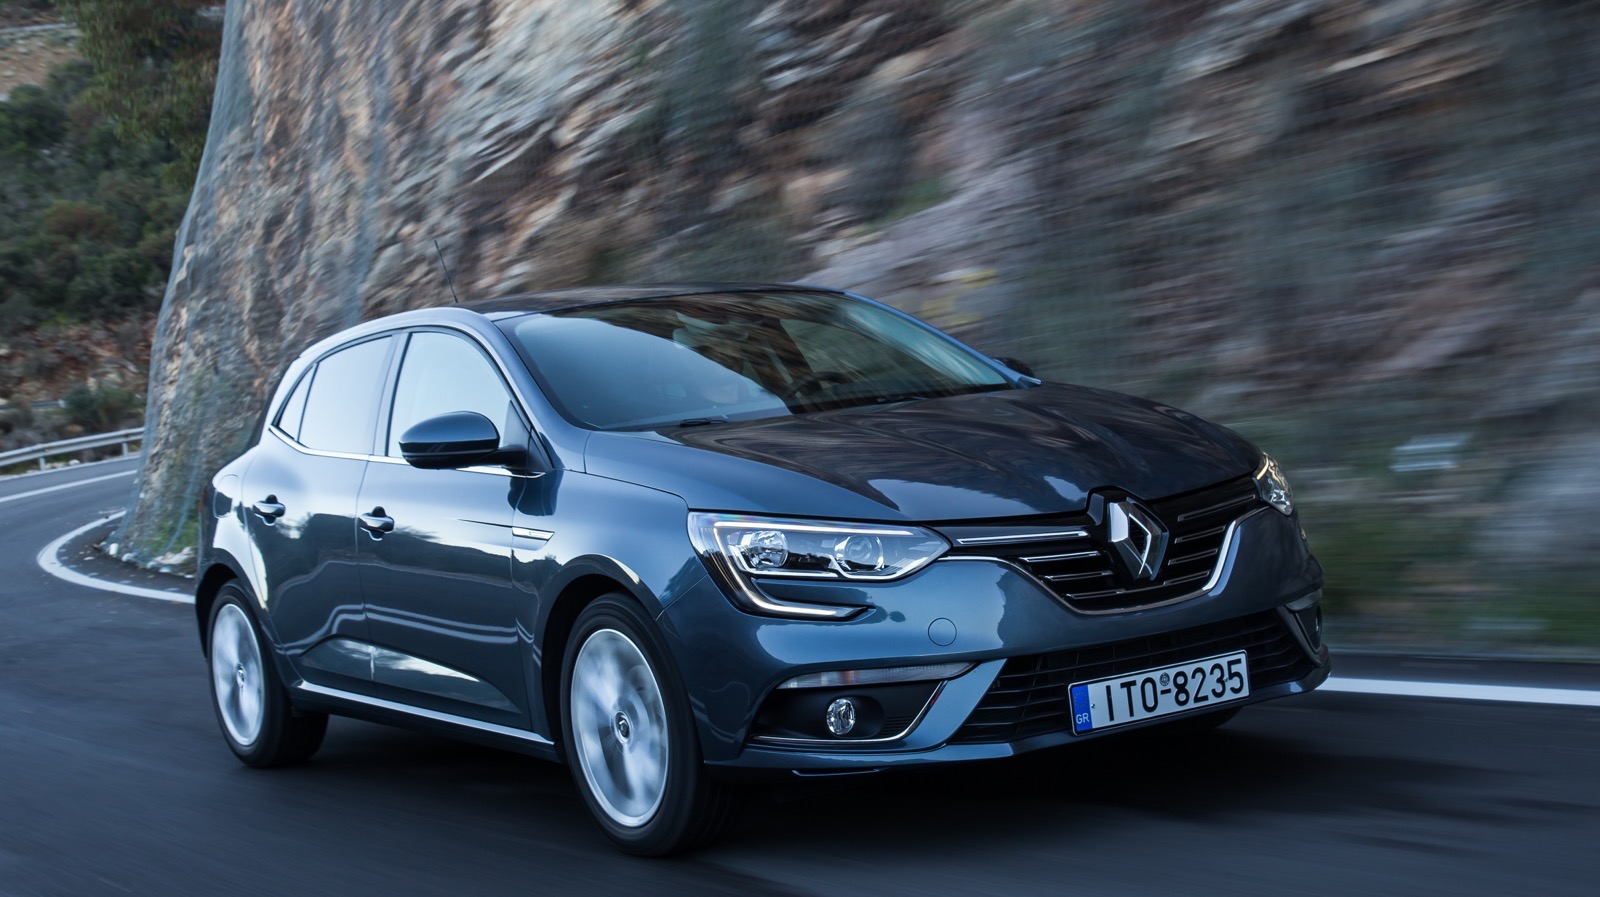 First_Drive_Renault_Megane_132